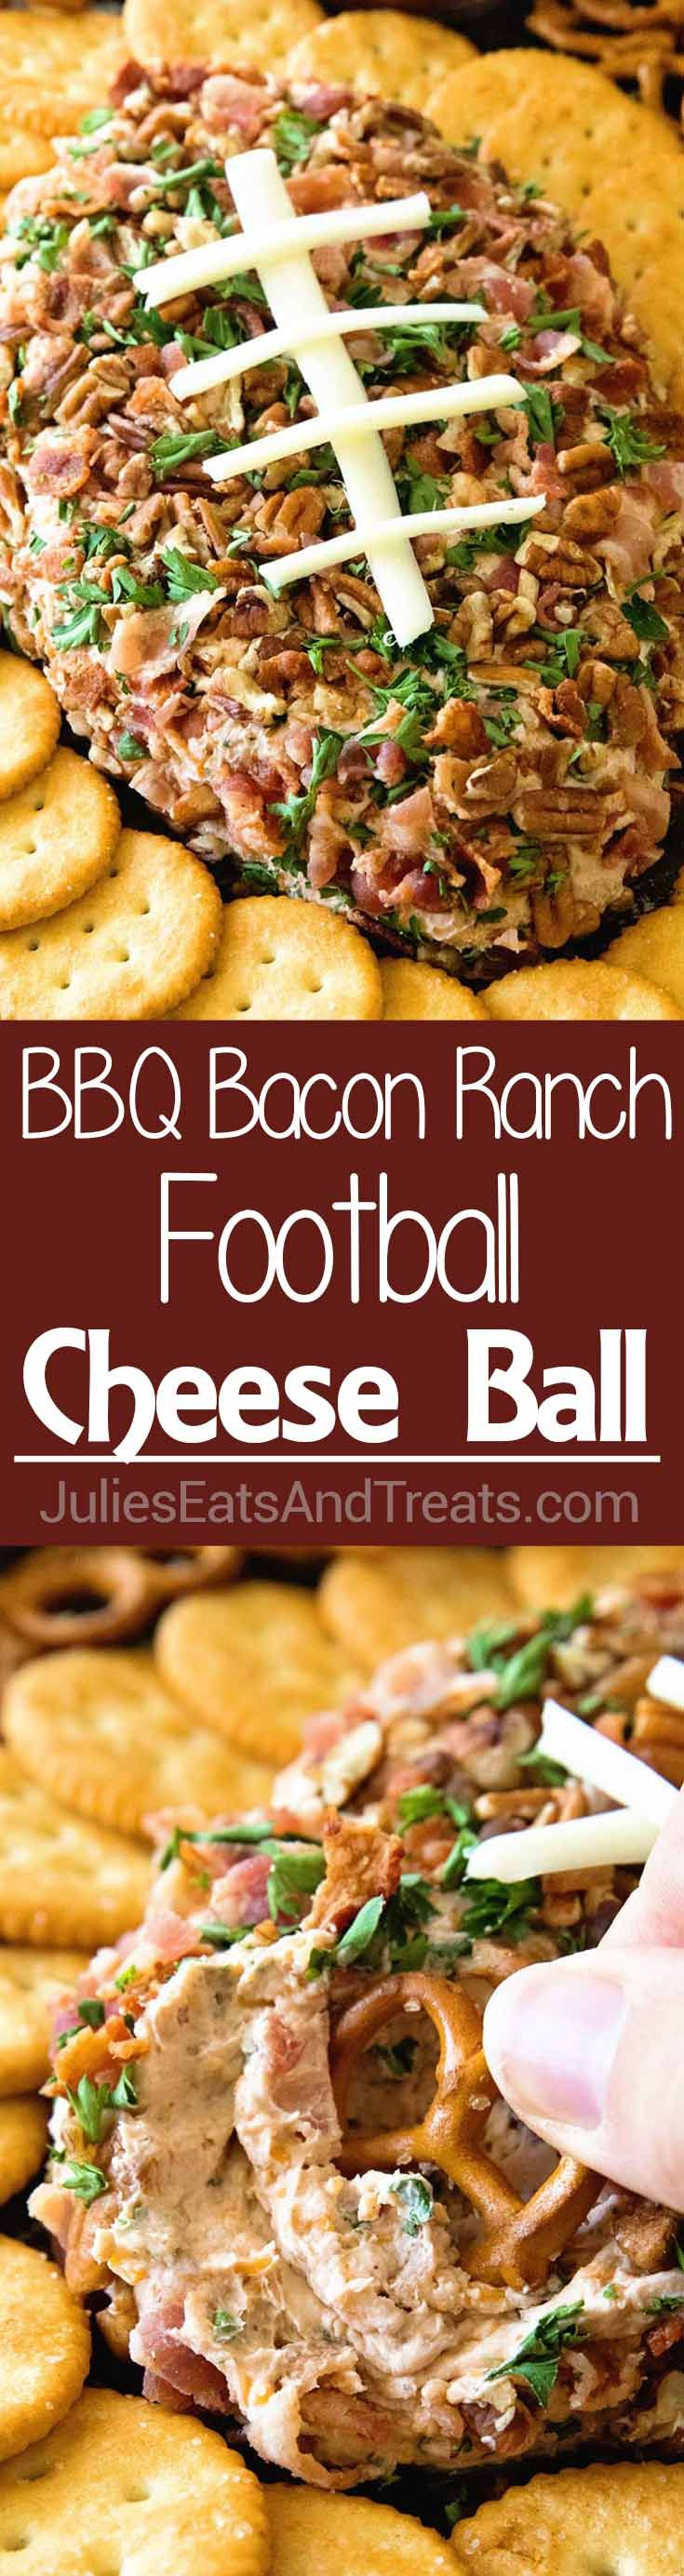 BBQ Bacon Ranch Football Cheese Ball ~ How to Make The Perfectly, Delicious BBQ Chicken Bacon Ranch Football Recipe! Loaded with Cheese, BBQ Sauce, Bacon, Pecans and Made into the Shape of Football! Perfect Tailgating Recipe!